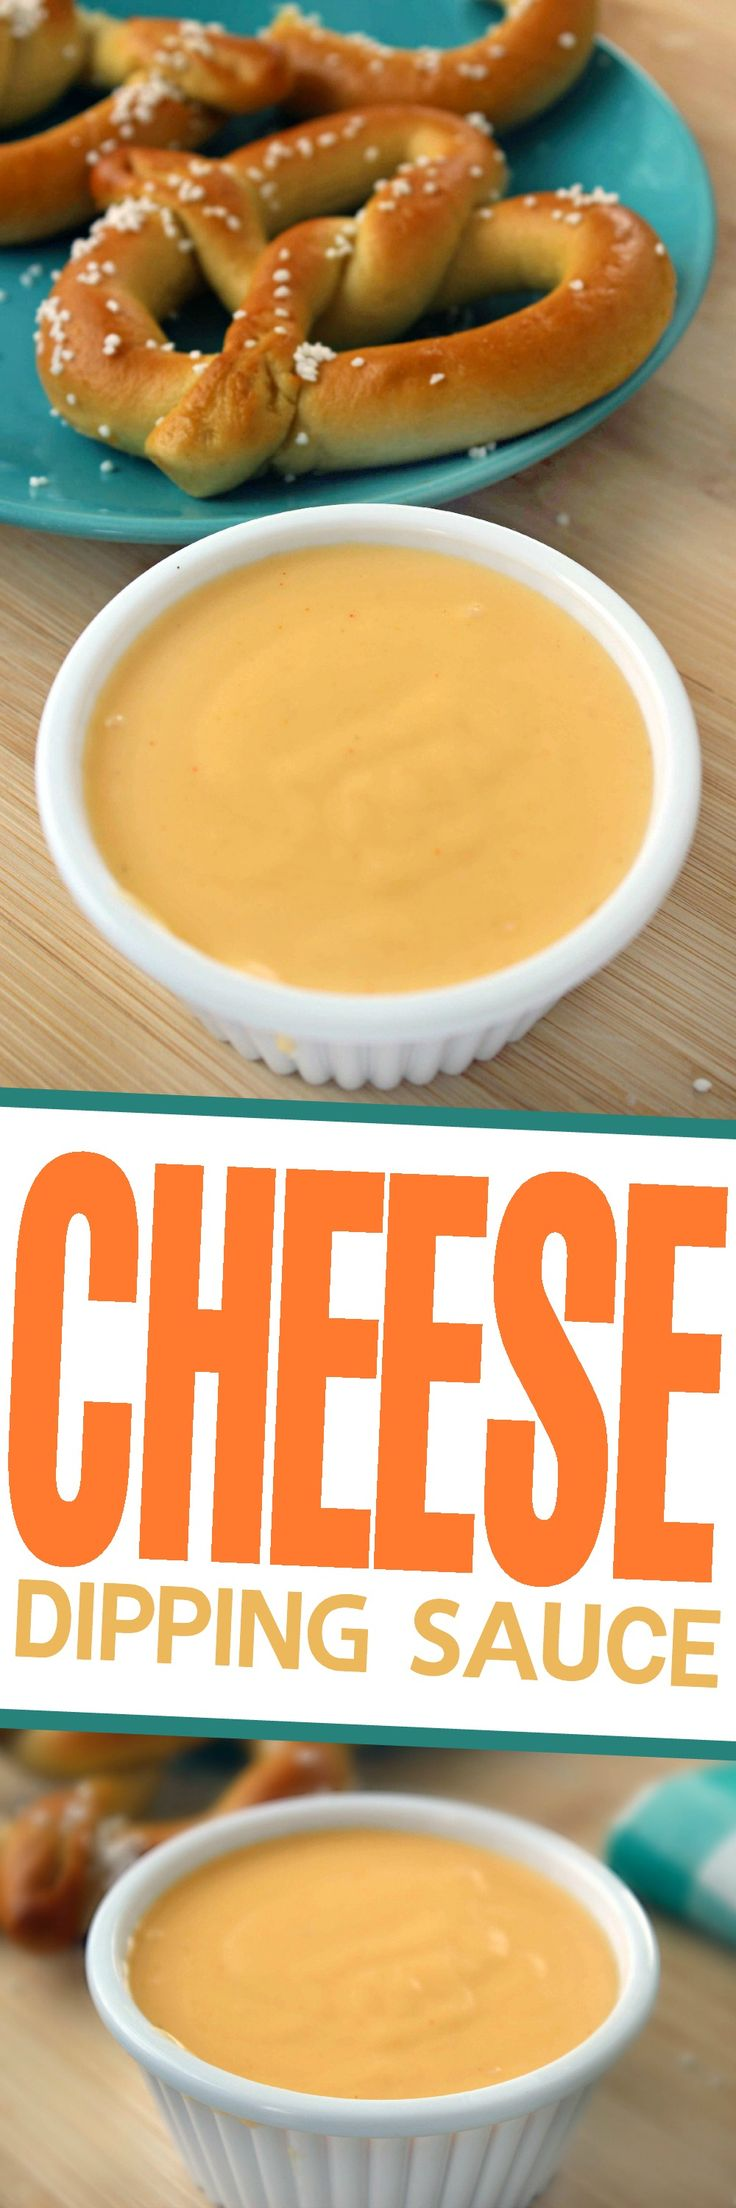 This Is A Classic Cheese Dipping Sauce Recipe Perfect For Pairing With Pretzels Or Nachos As